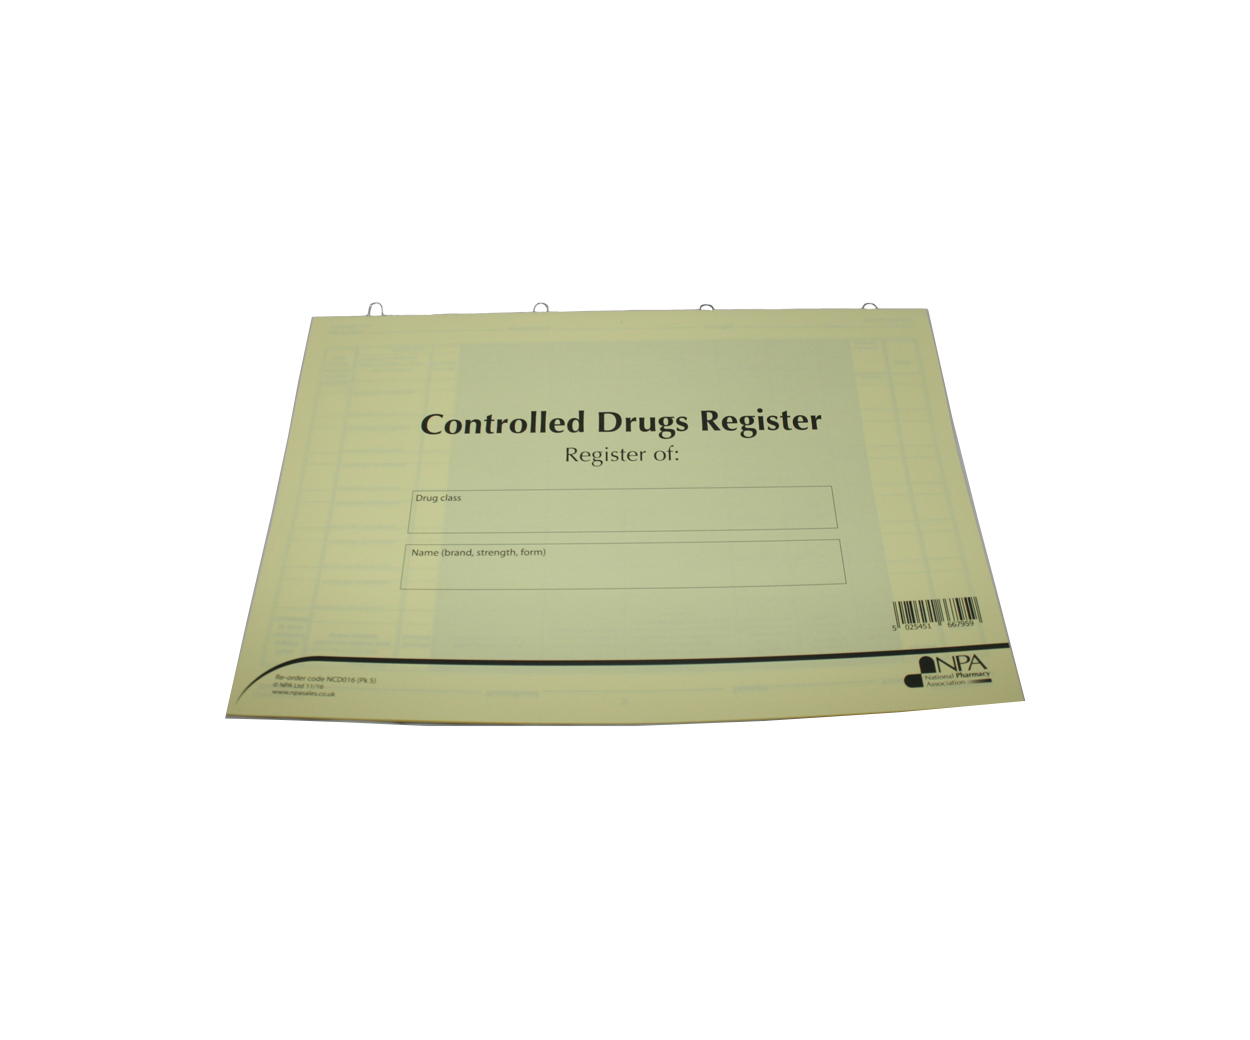 Blank Controlled Drugs Register Inserts - Pack of 3